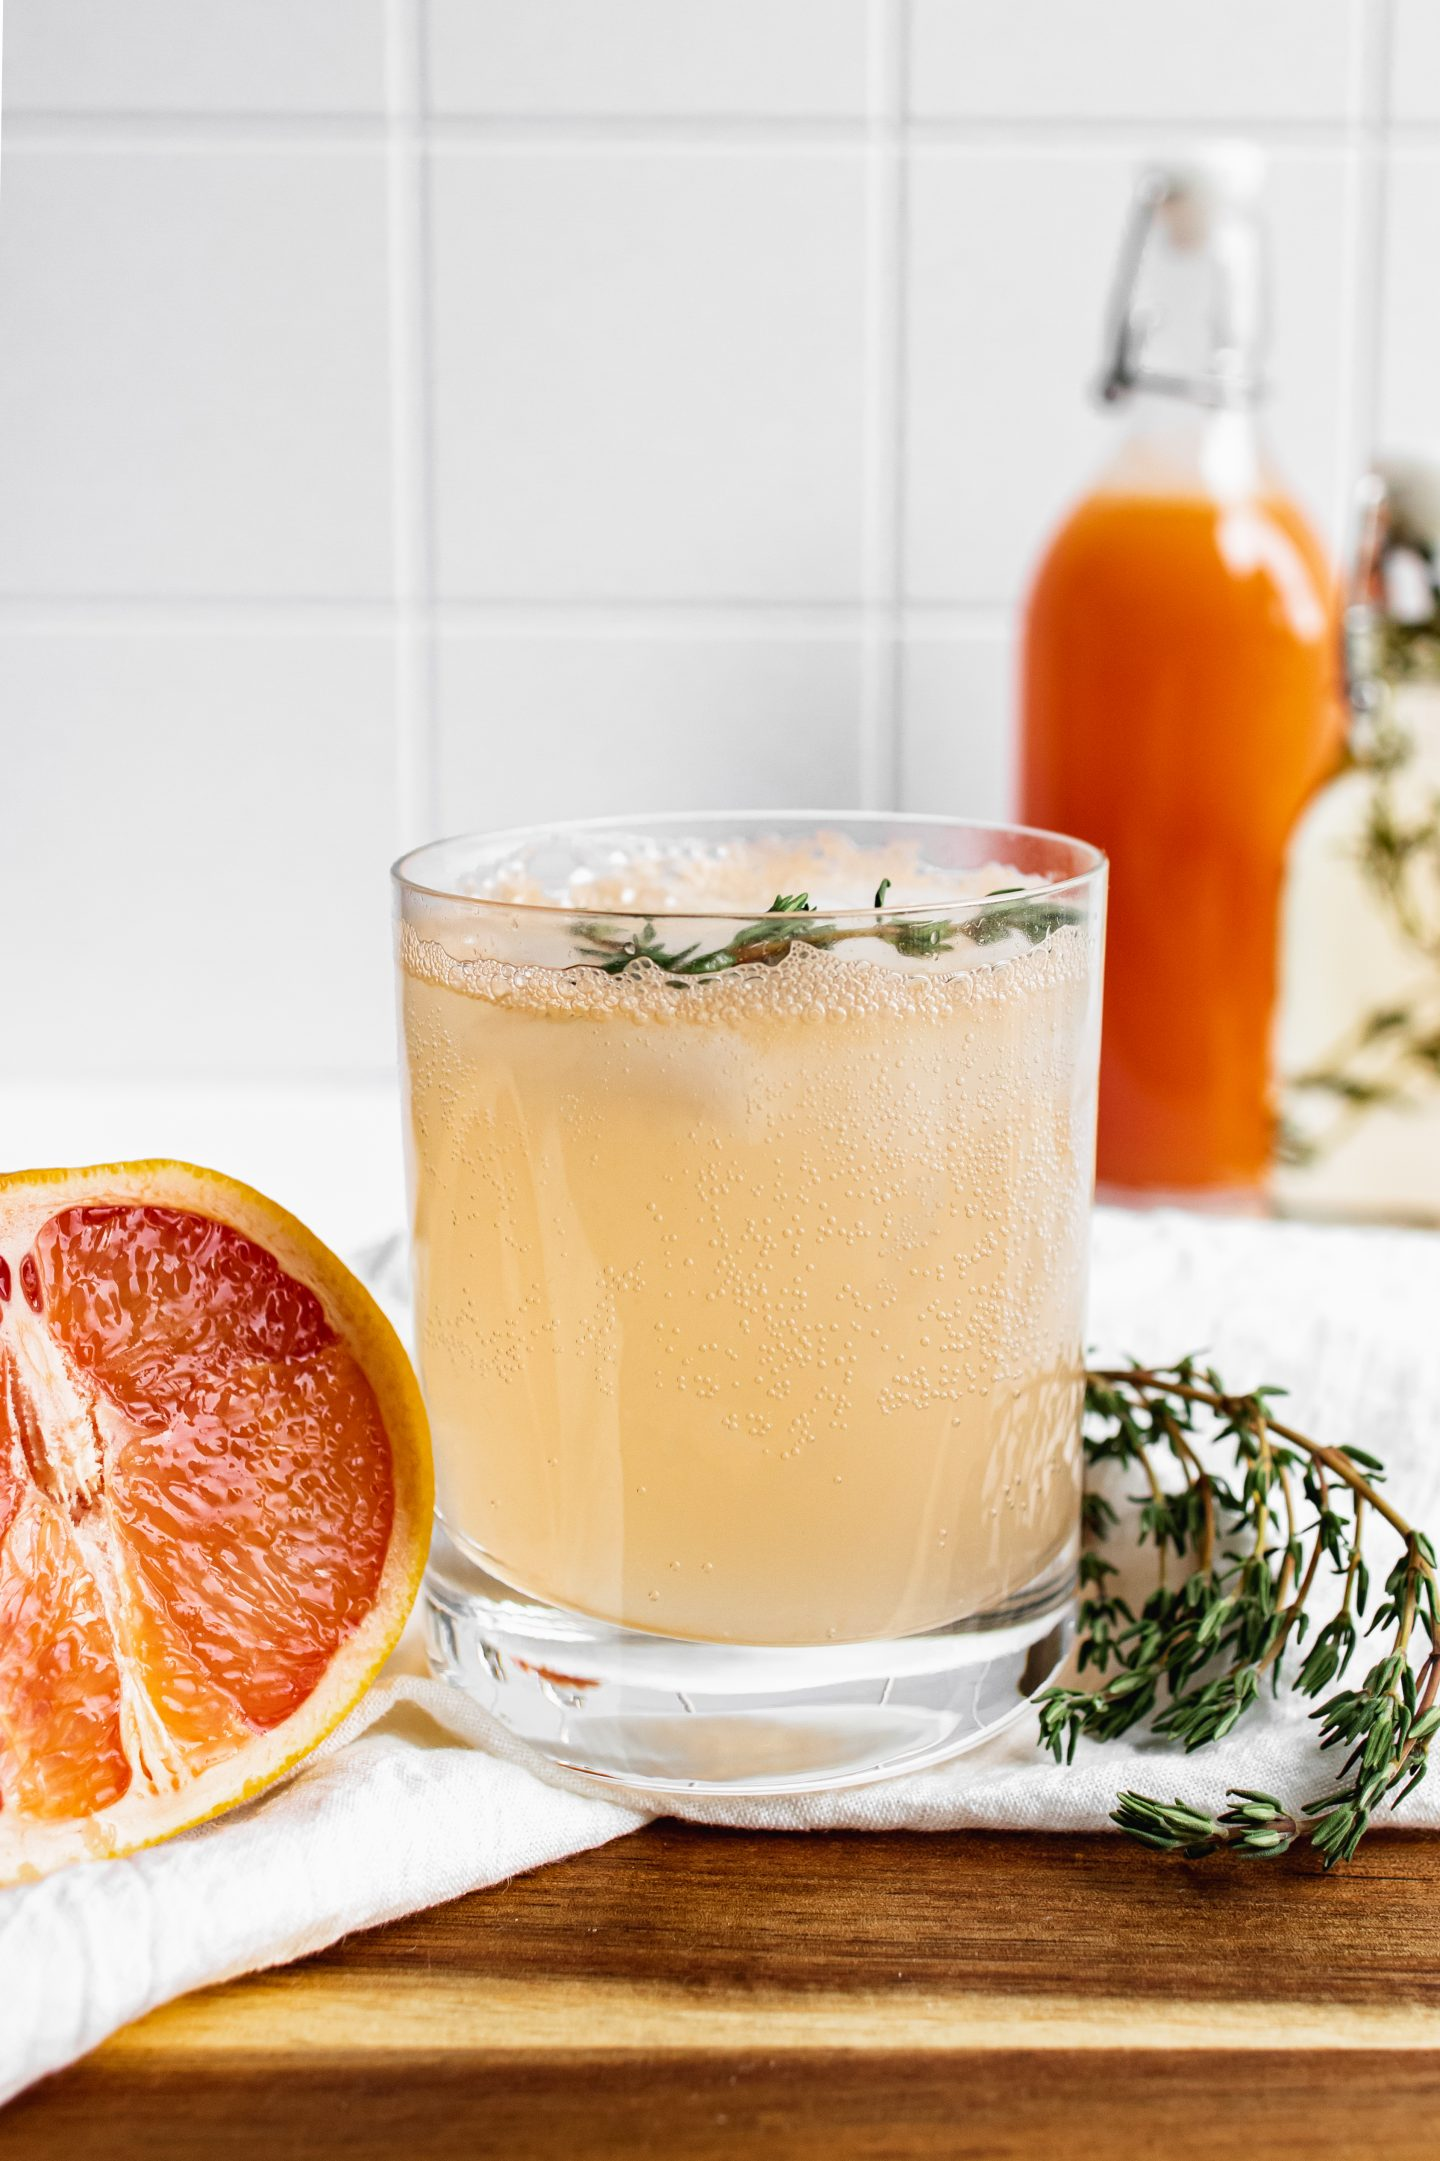 grapefruit cocktail in glass